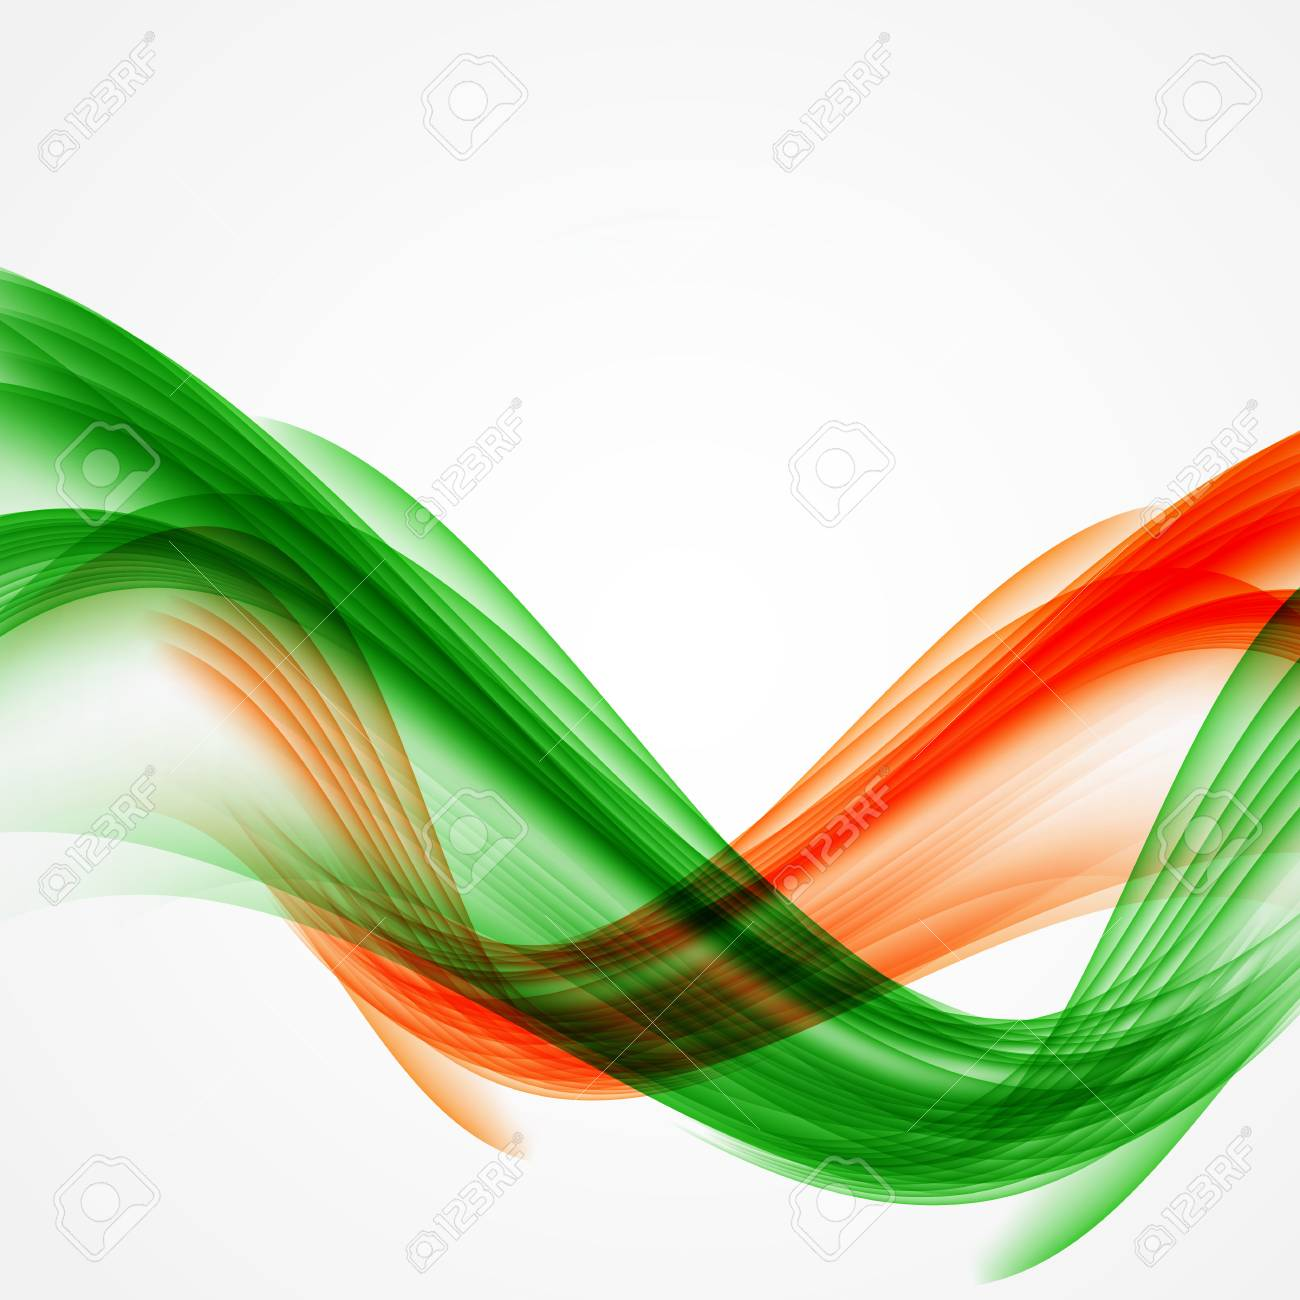 Abstract Green And Orange Wave On White Background